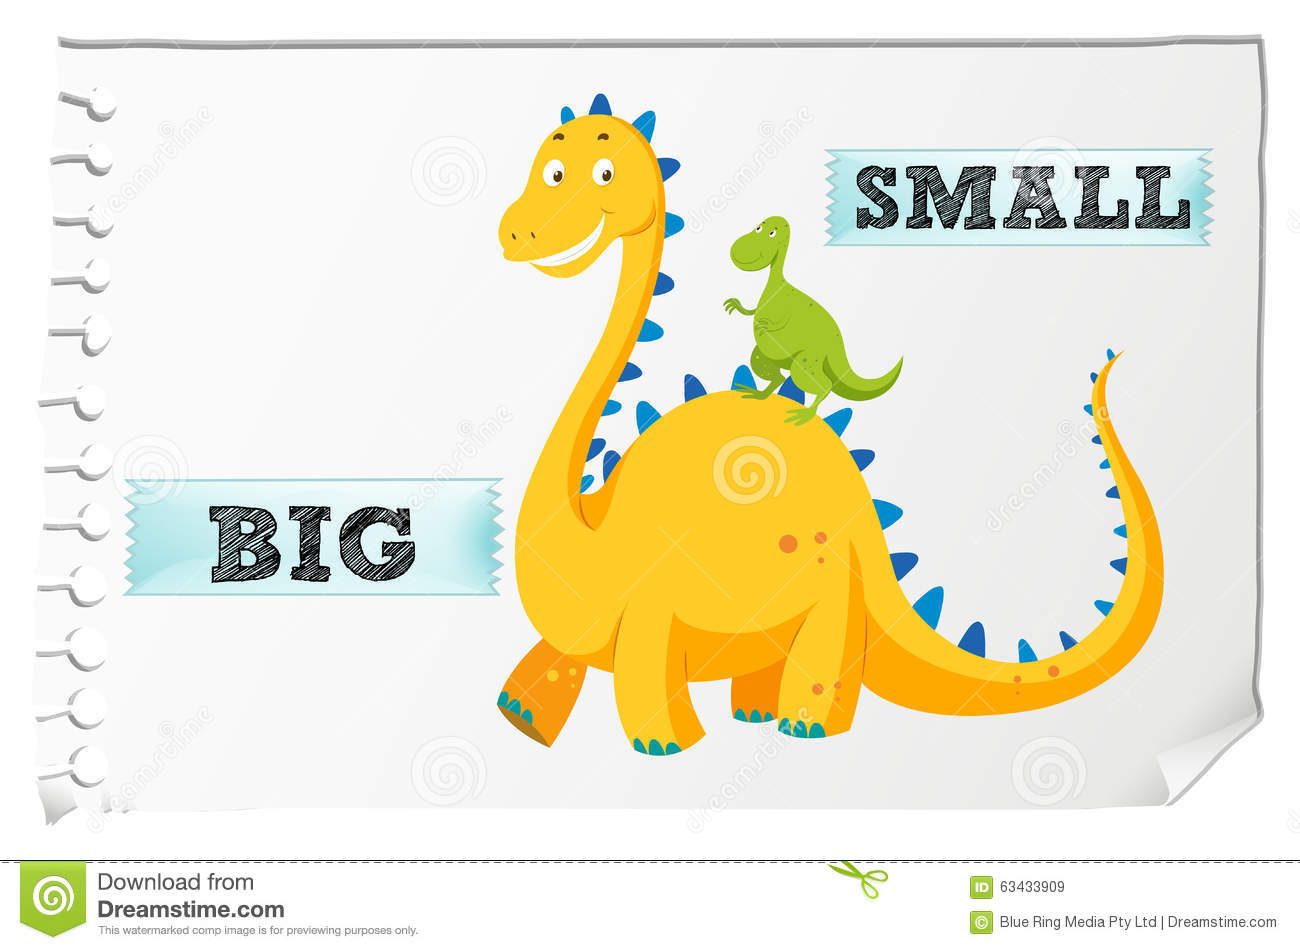 Big and small clipart freeuse download Opposite Adjectives With Big And Small Stock Vector - Image: 63433909 freeuse download